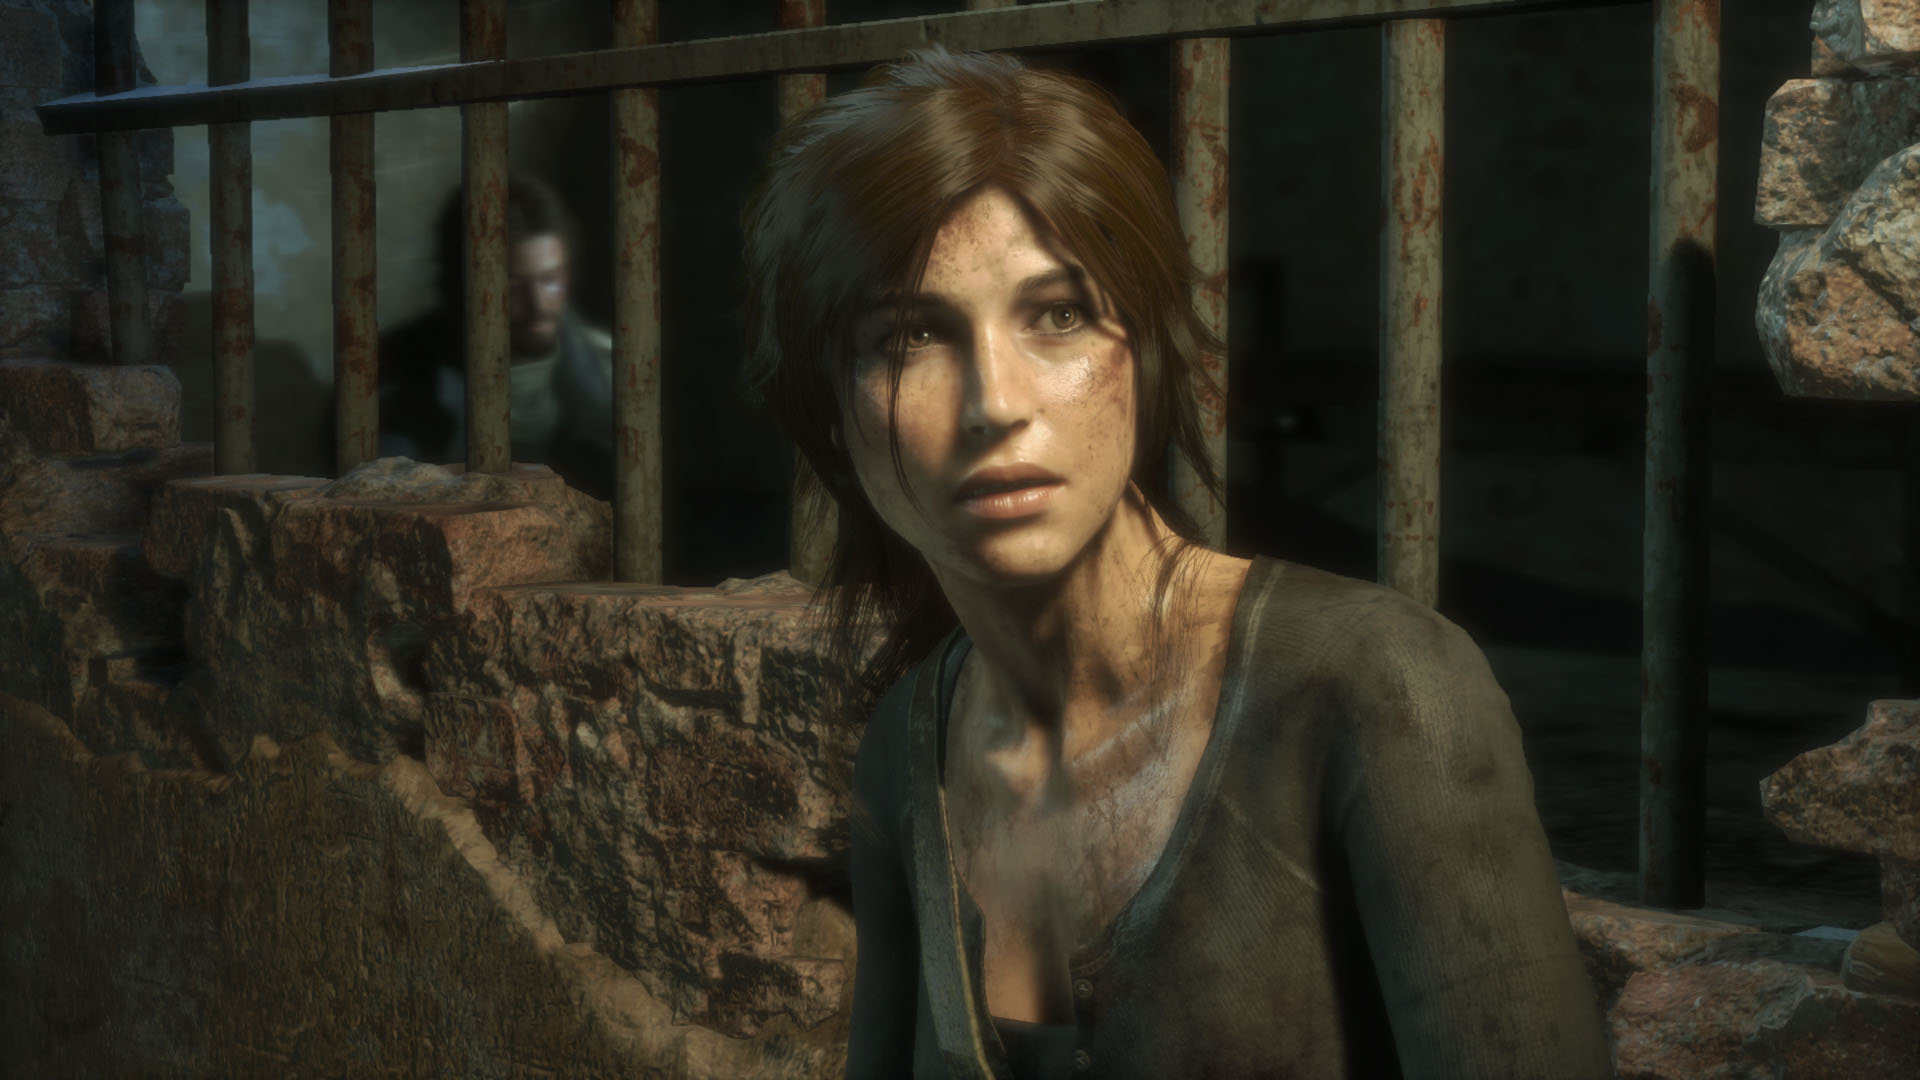 Rise of the tomb raider november 2015